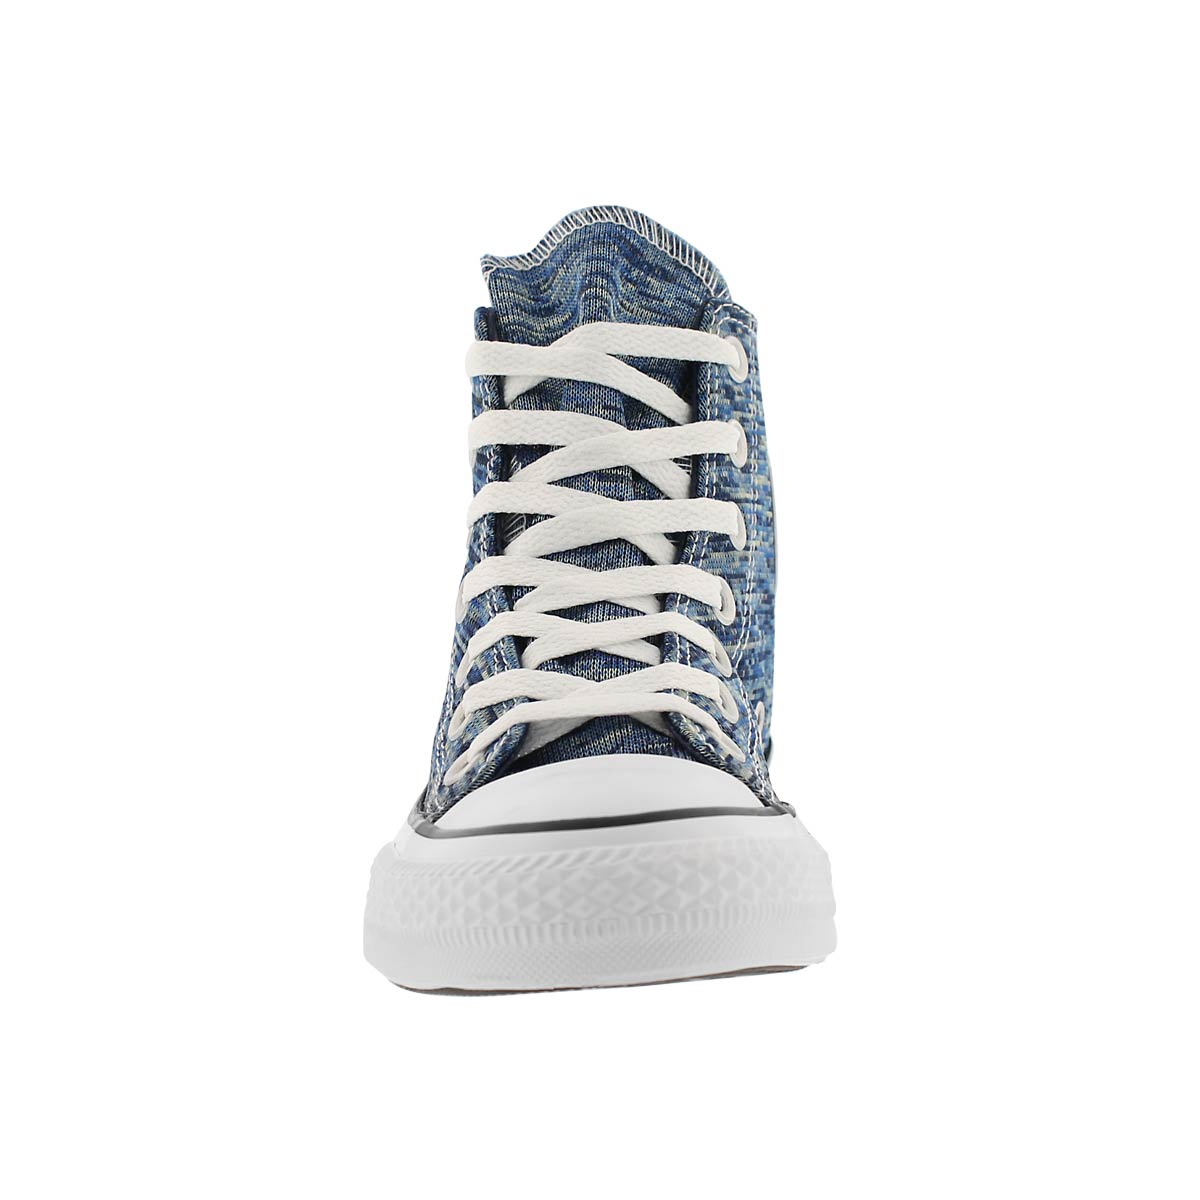 Lds CT A/S Classic Jersey navy high top